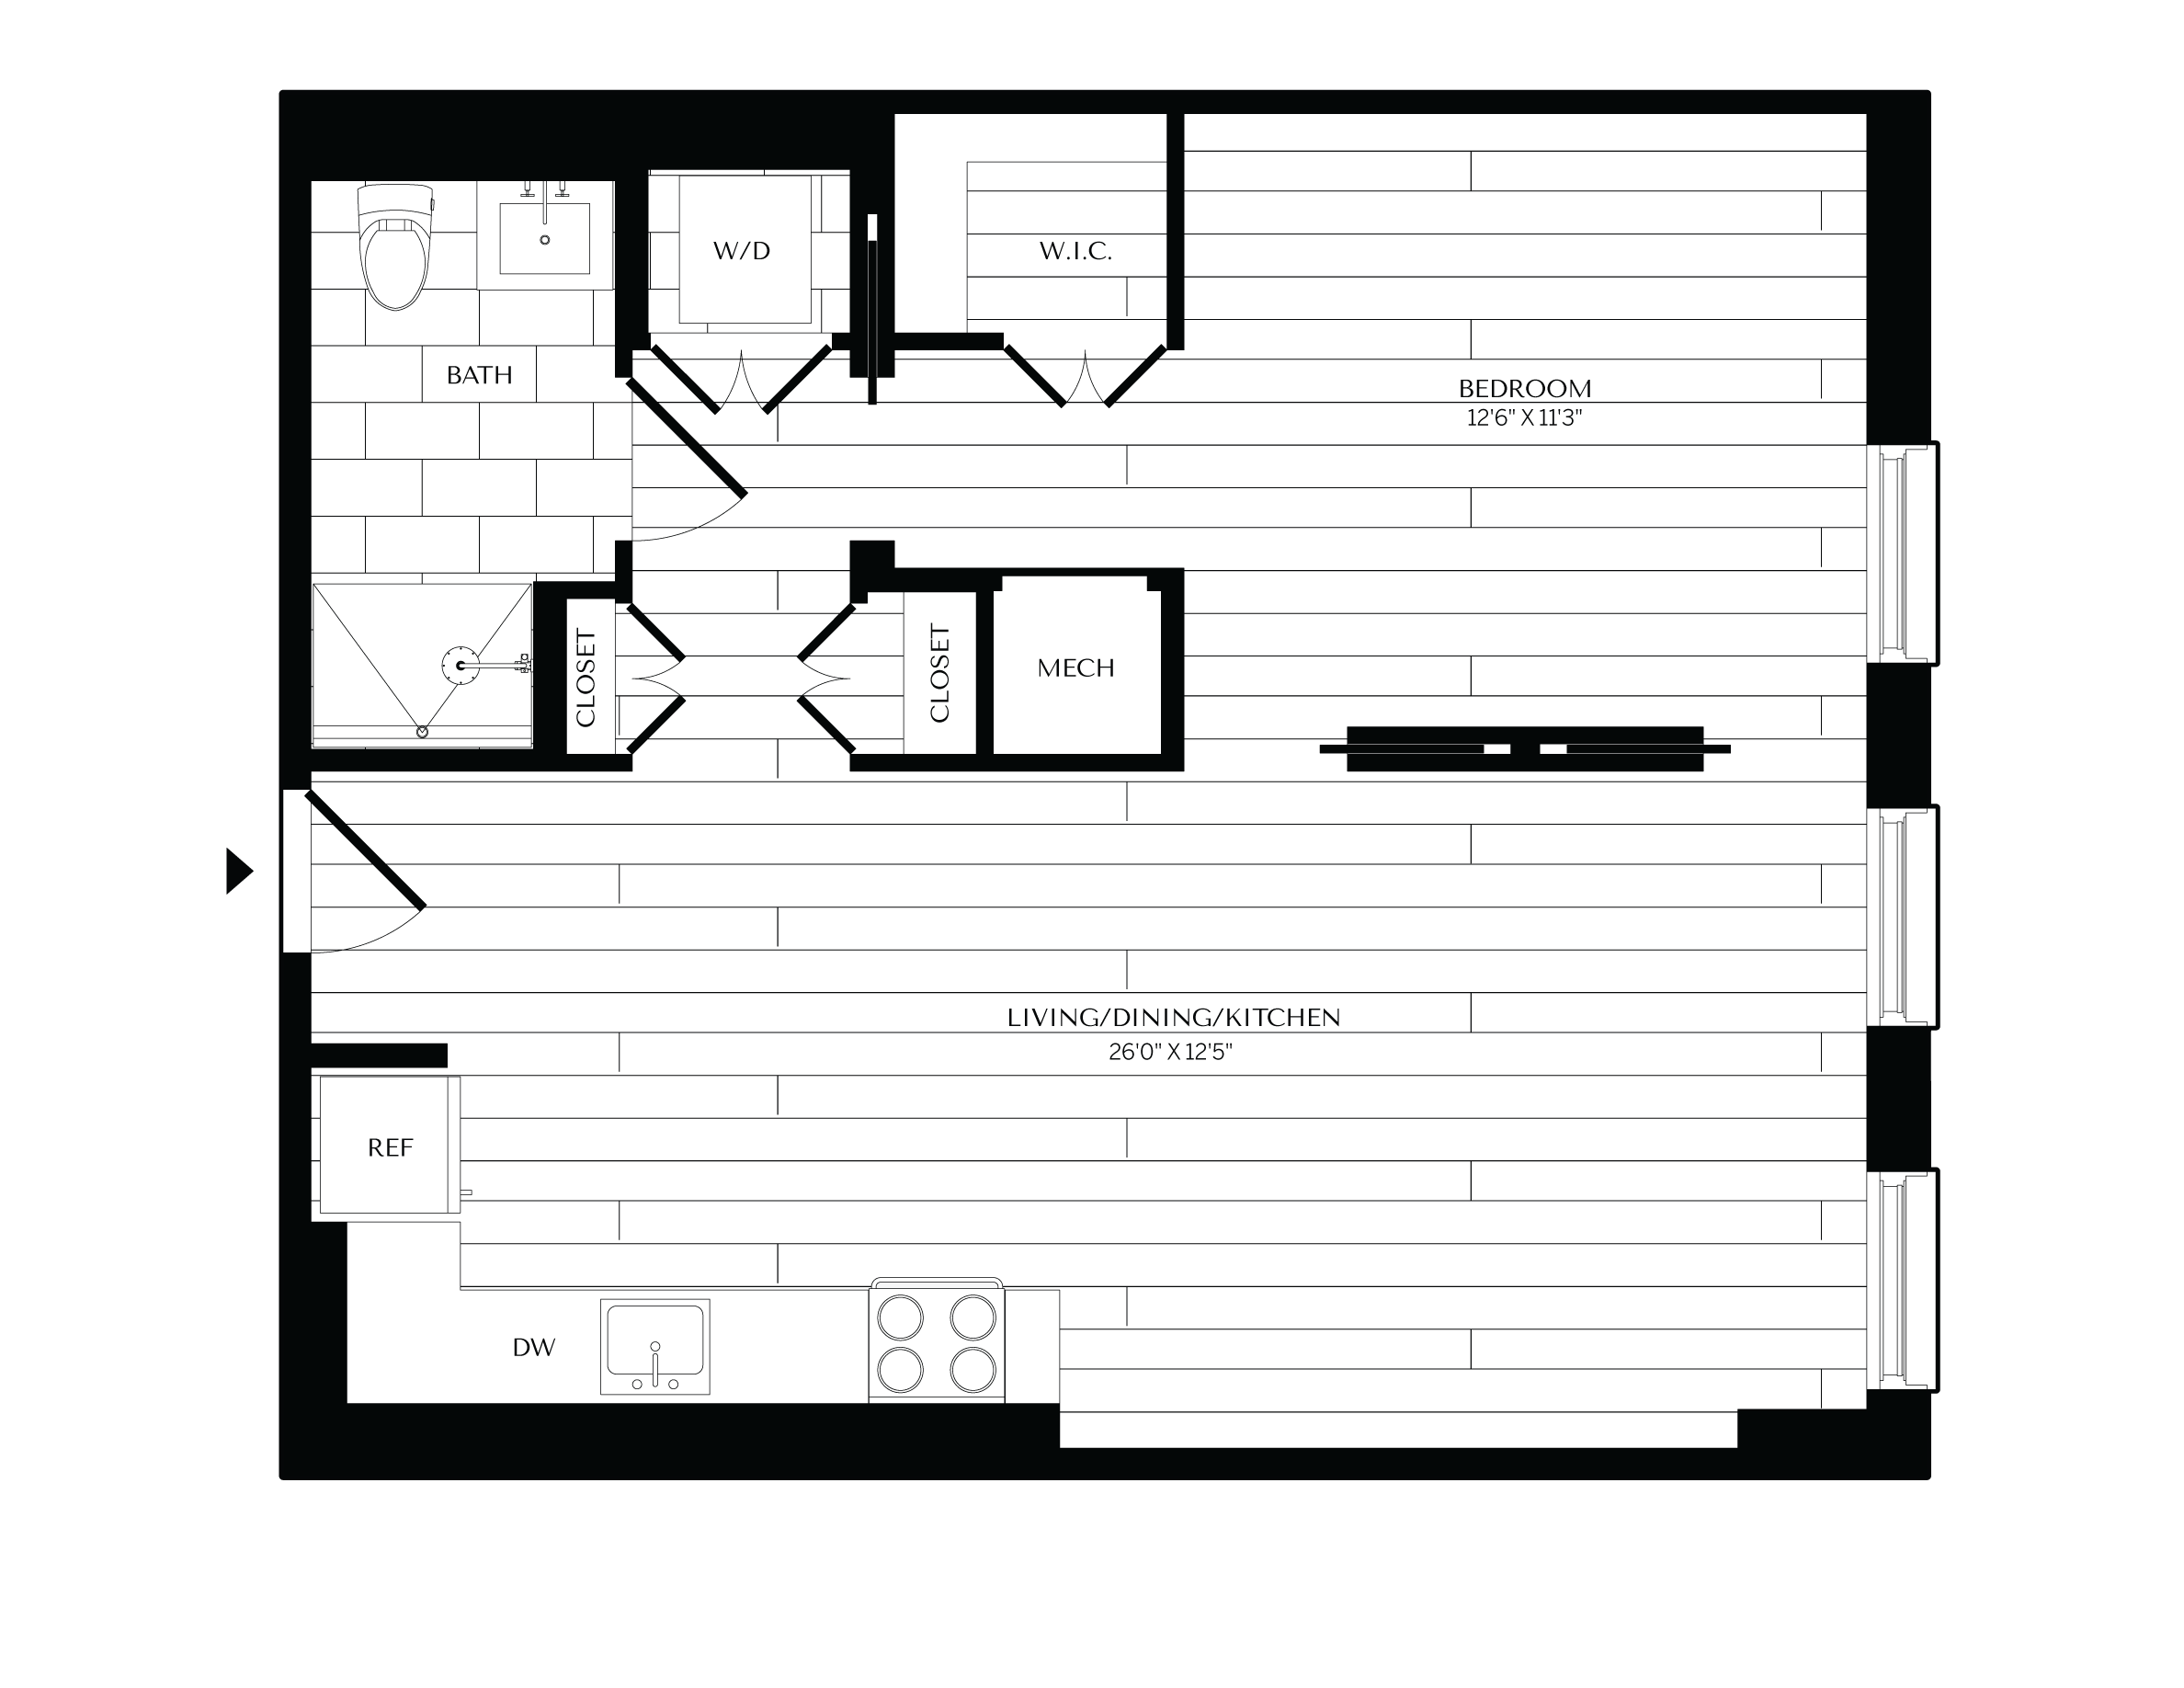 Floorplan image of unit 0504